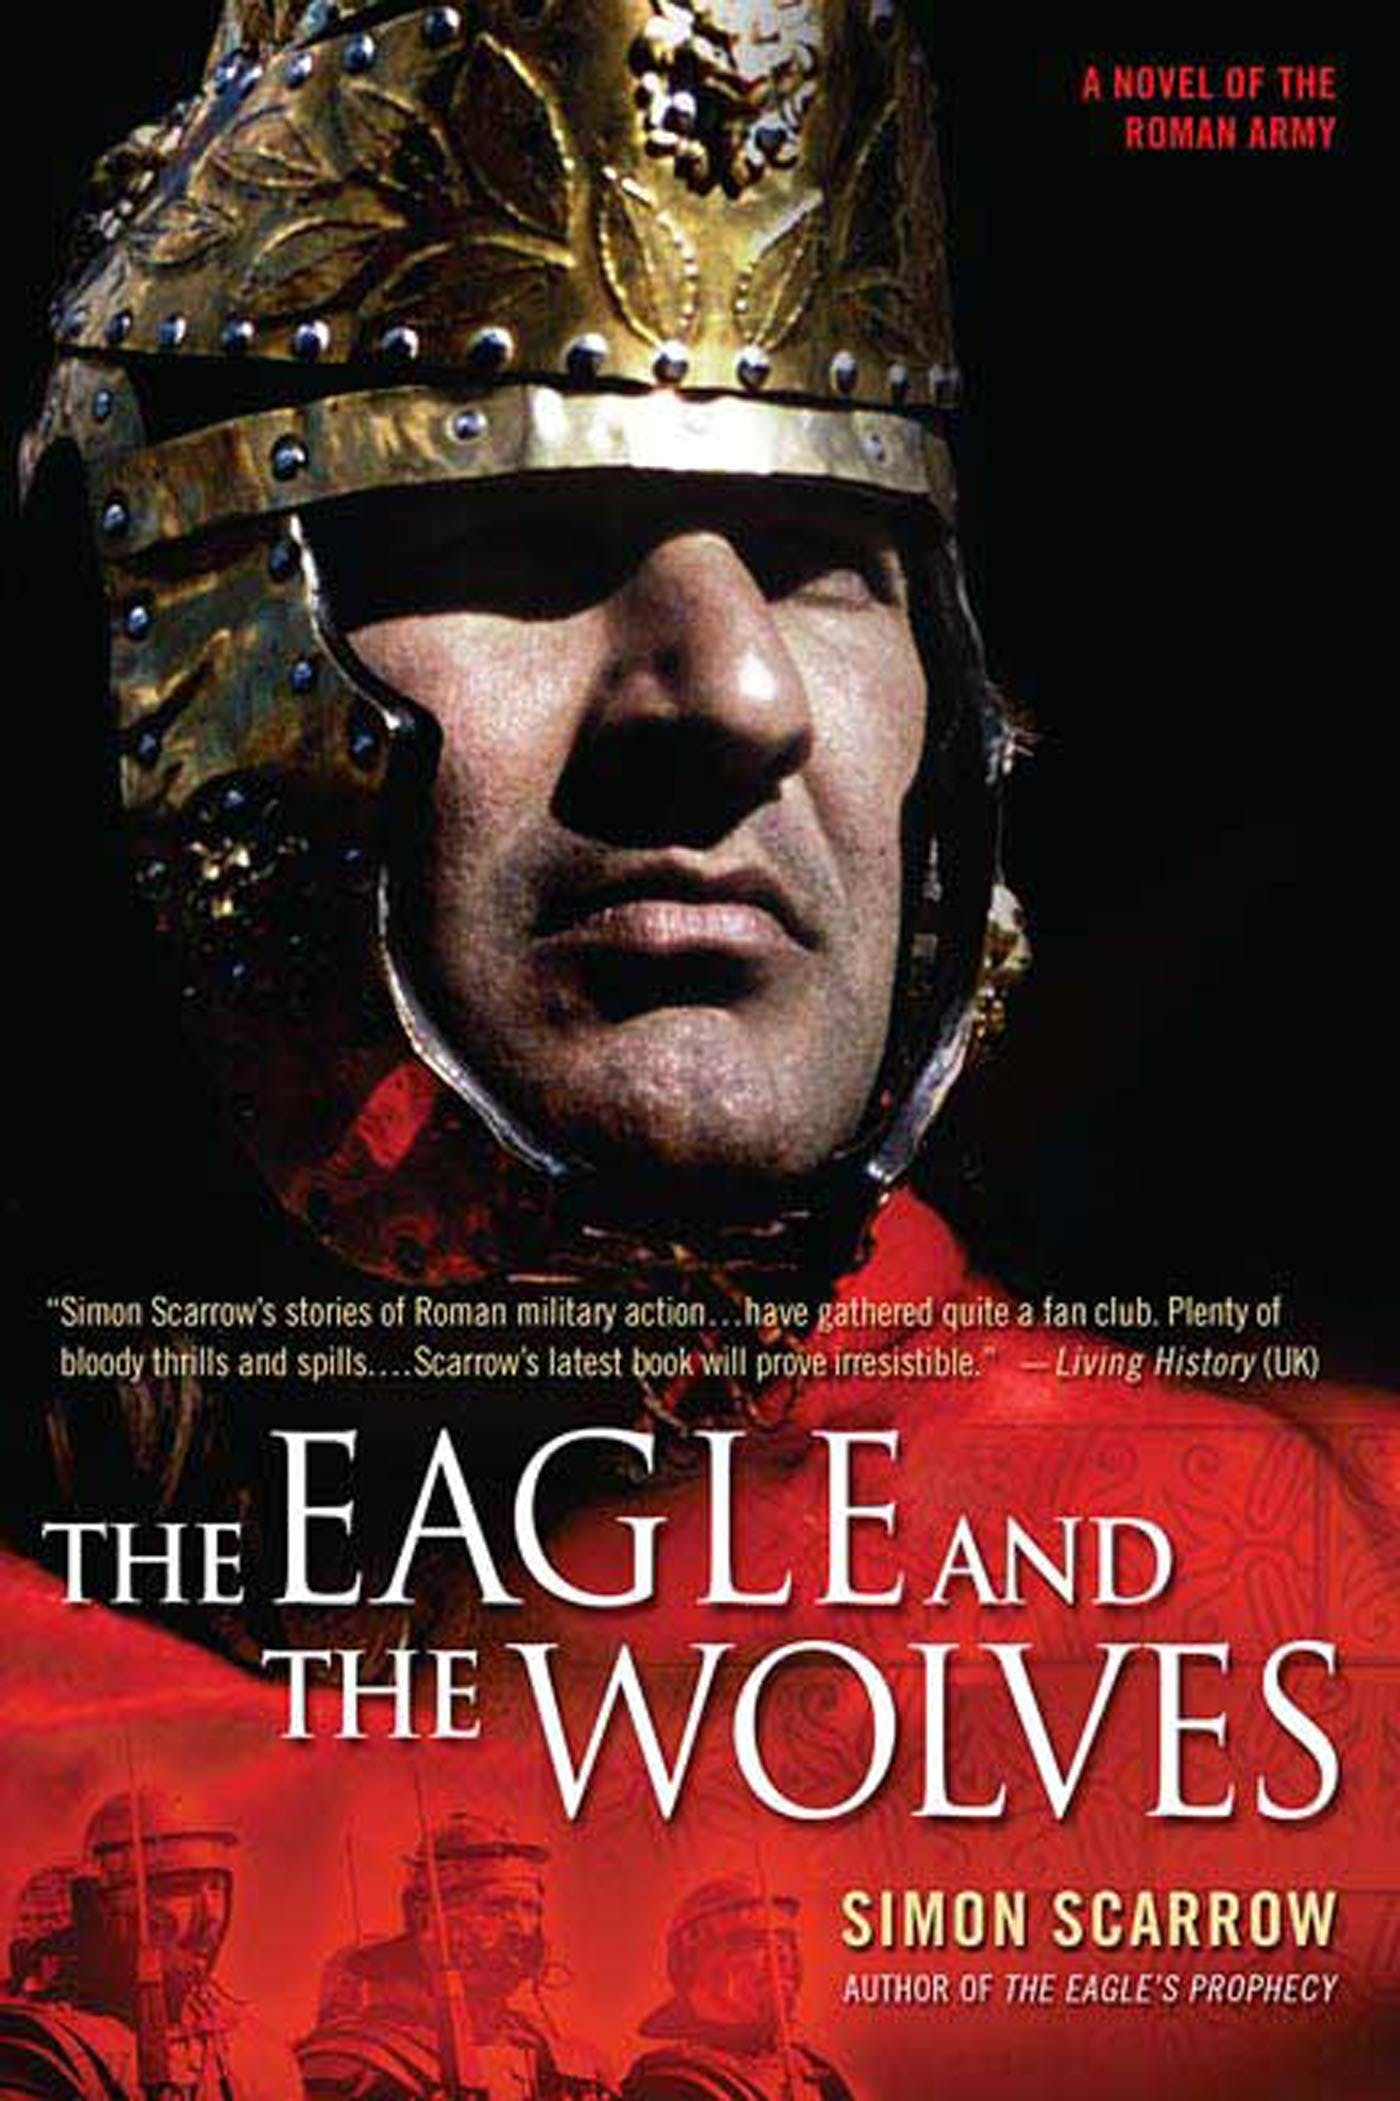 Image of The Eagle and the Wolves